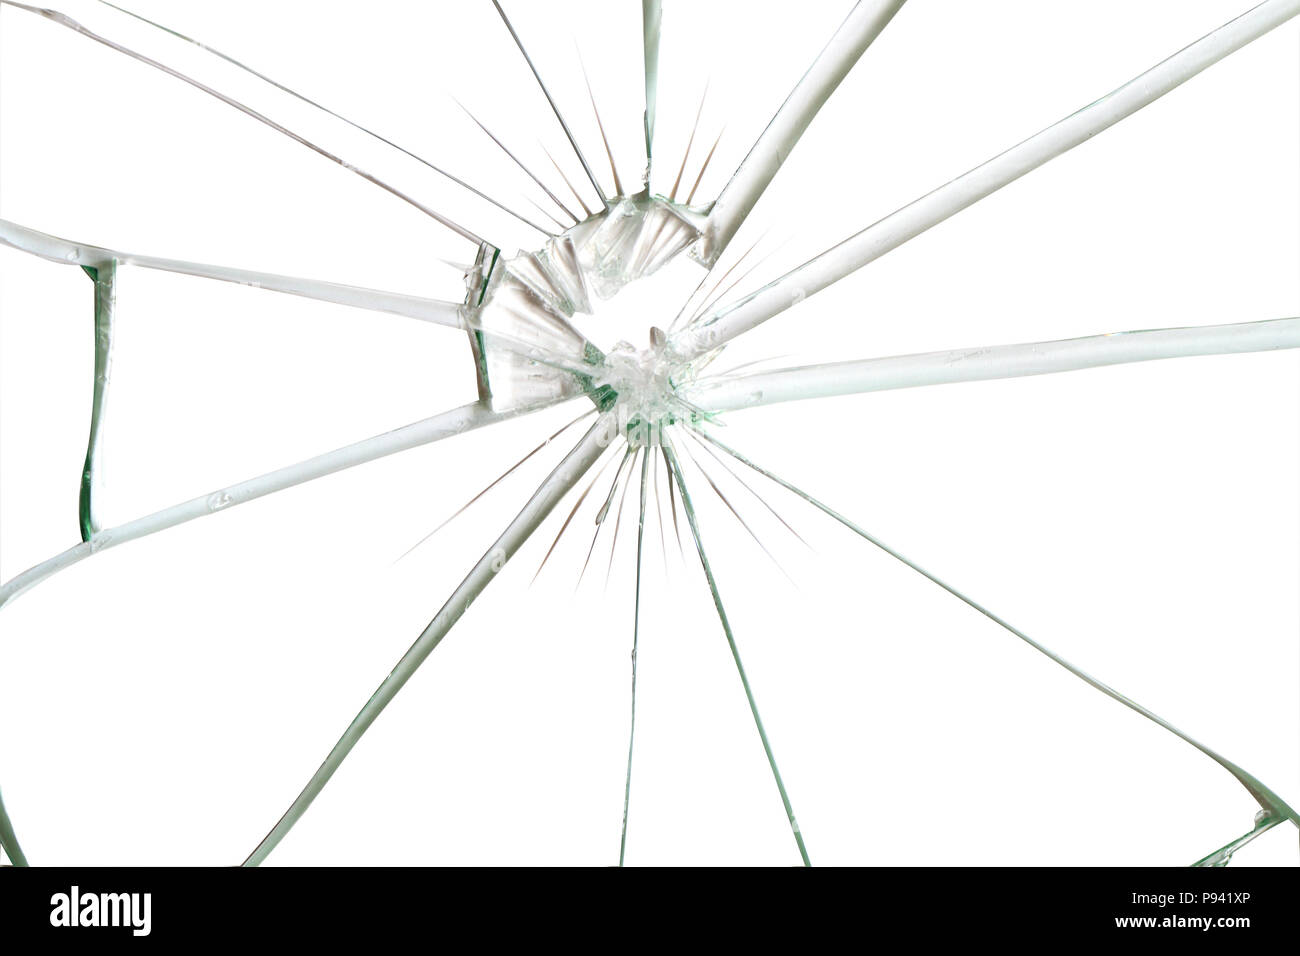 Broken glass background for your images isolated on white with clipping path - Stock Image